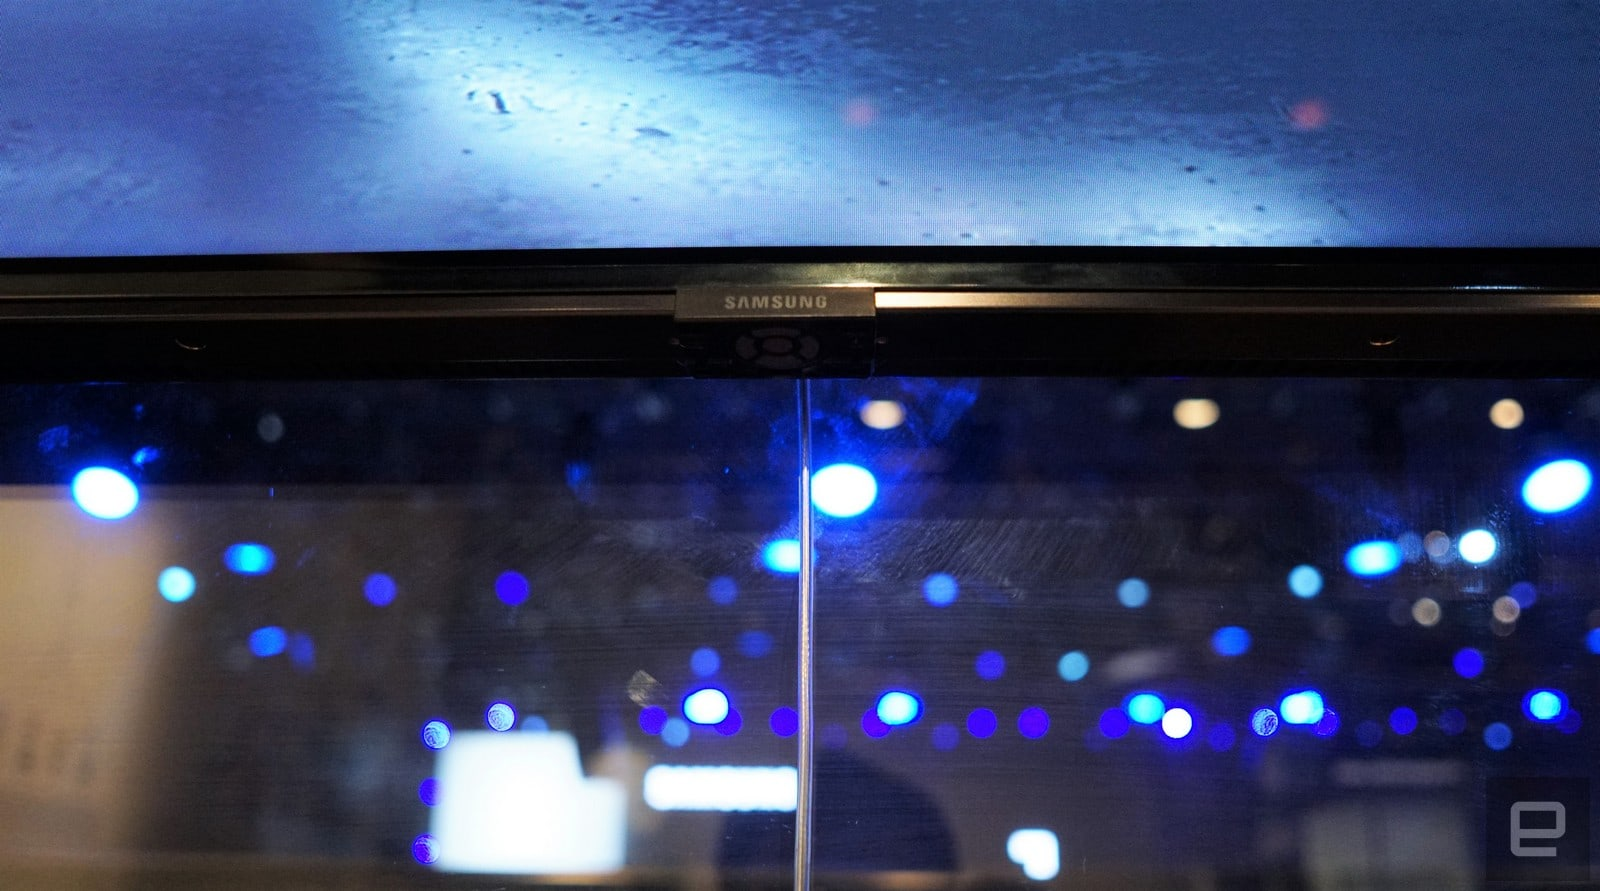 Our first look at Samsung's 2018 QLED TVs